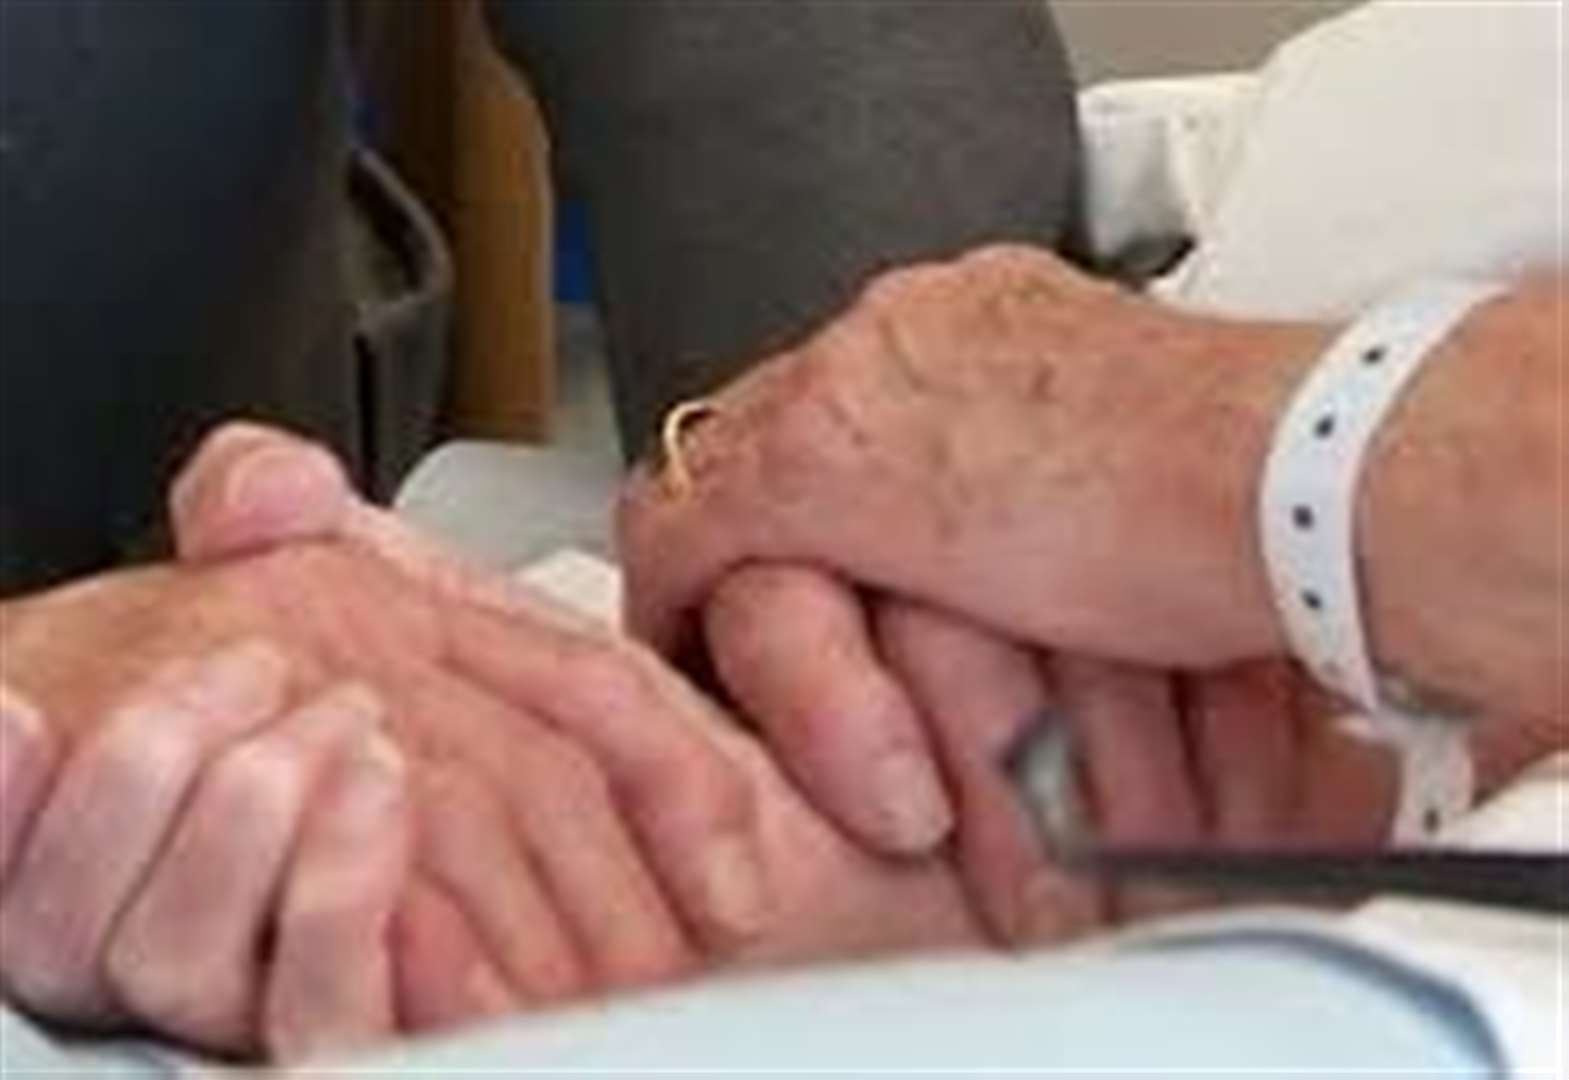 Views sought on end-of-life care